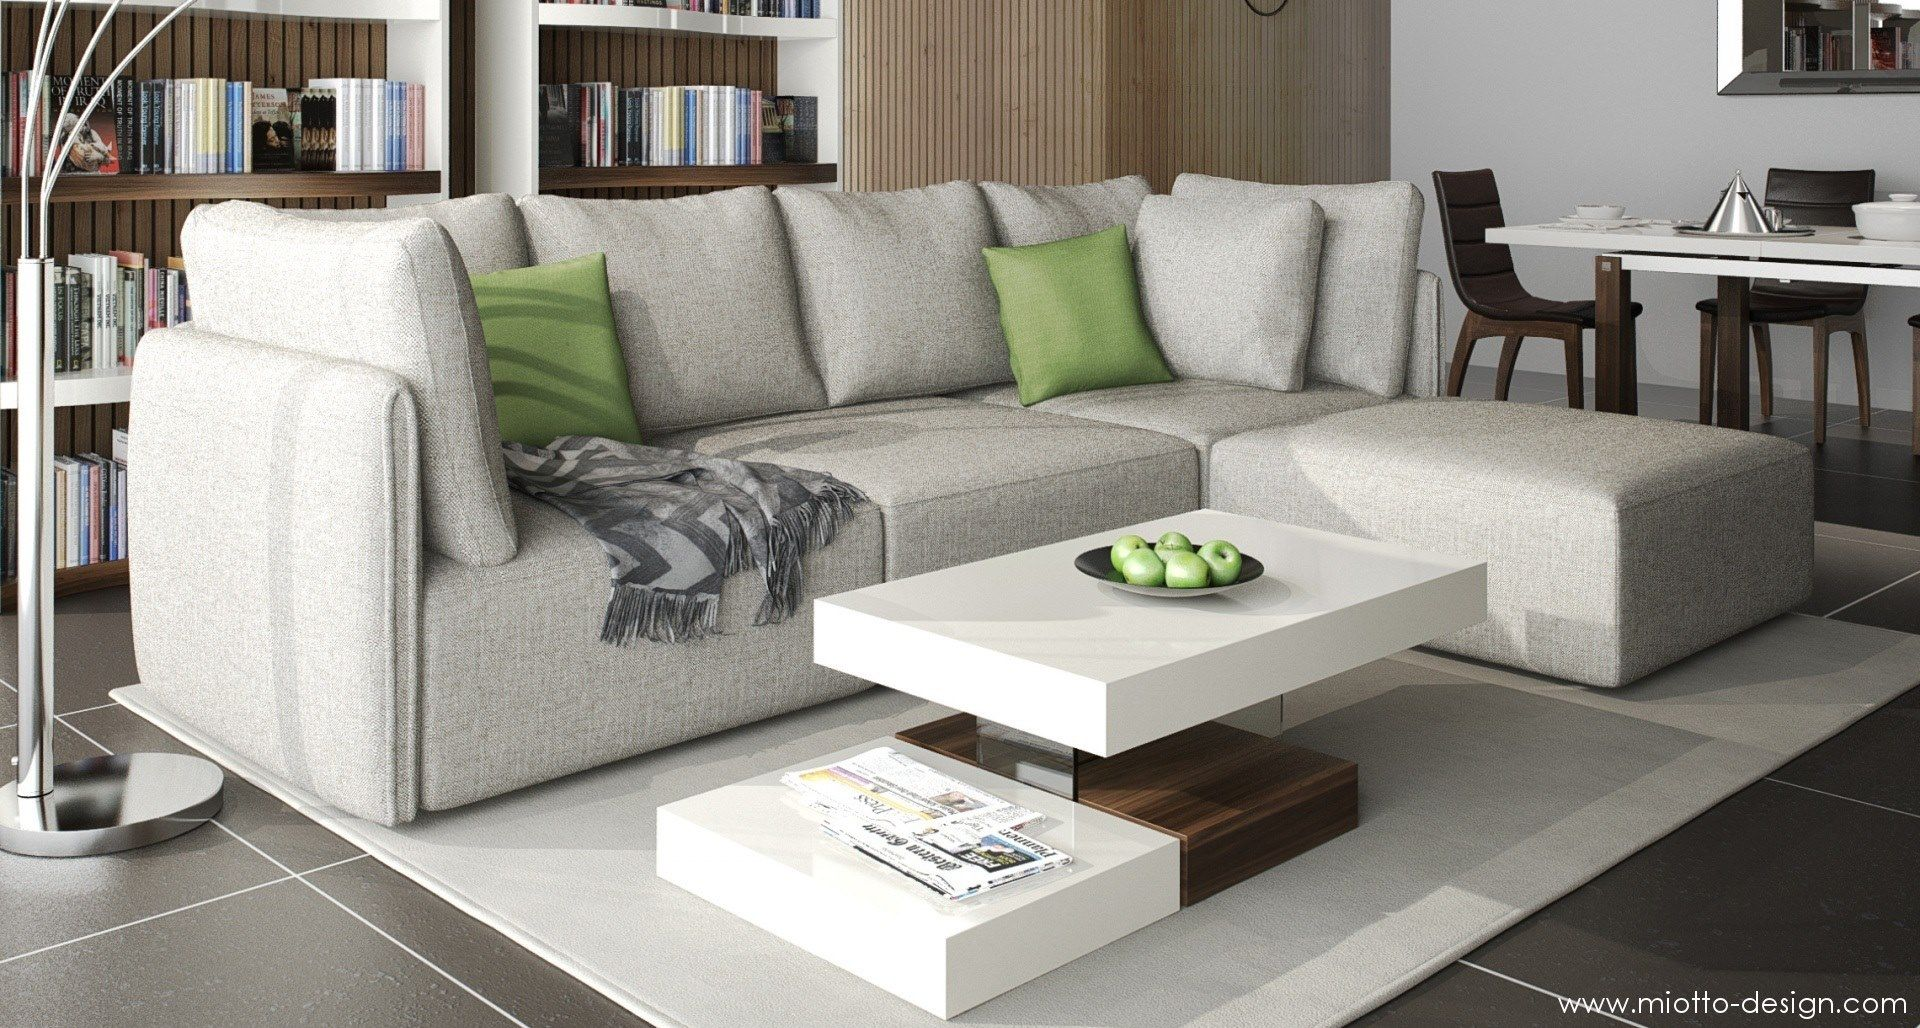 Best Dear Coffee Drinkers Can You Imagine A Living Room 400 x 300